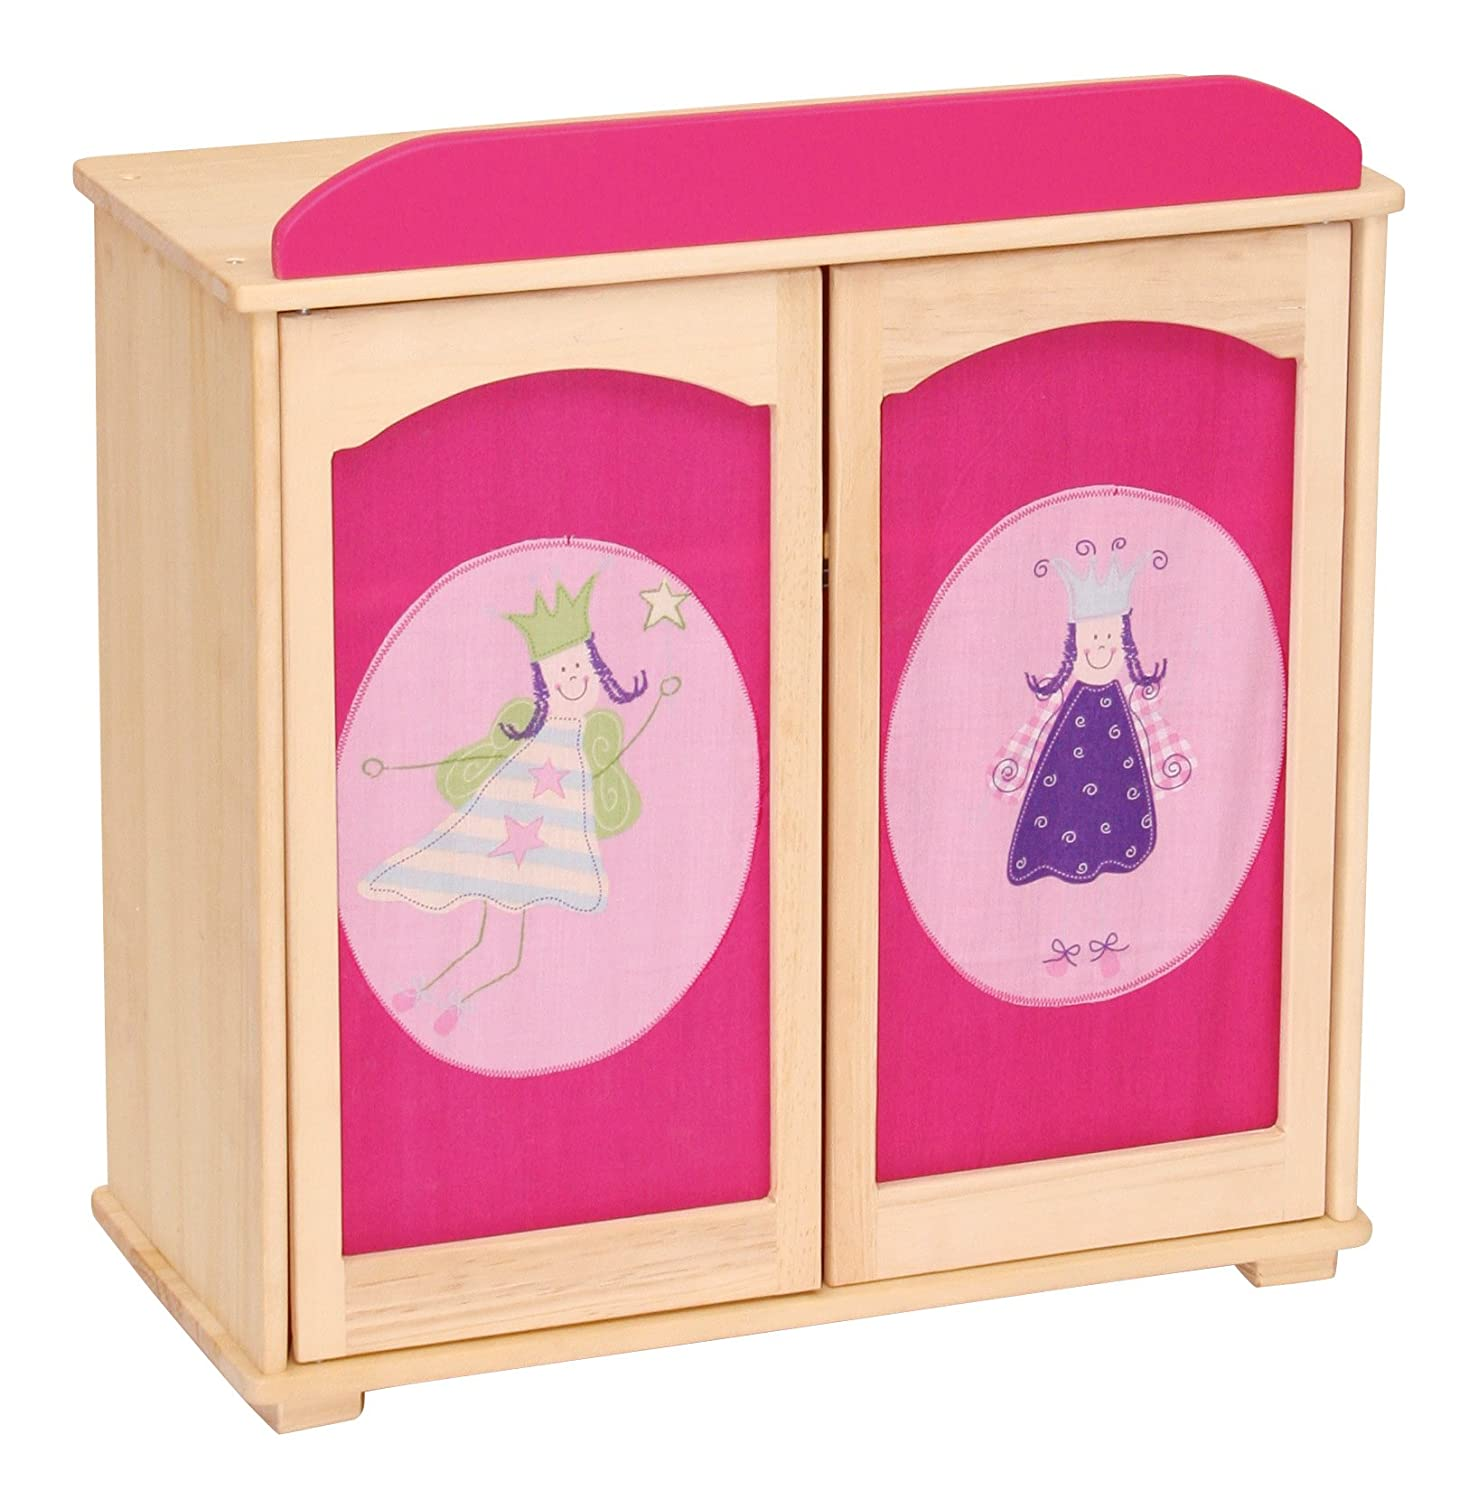 Puppenkleiderschrank roba Happy Fee 97233 Dolls' Bed with Covers Untreated Solid Wood 87 x 57 x 31 cm Happy Fairy Design